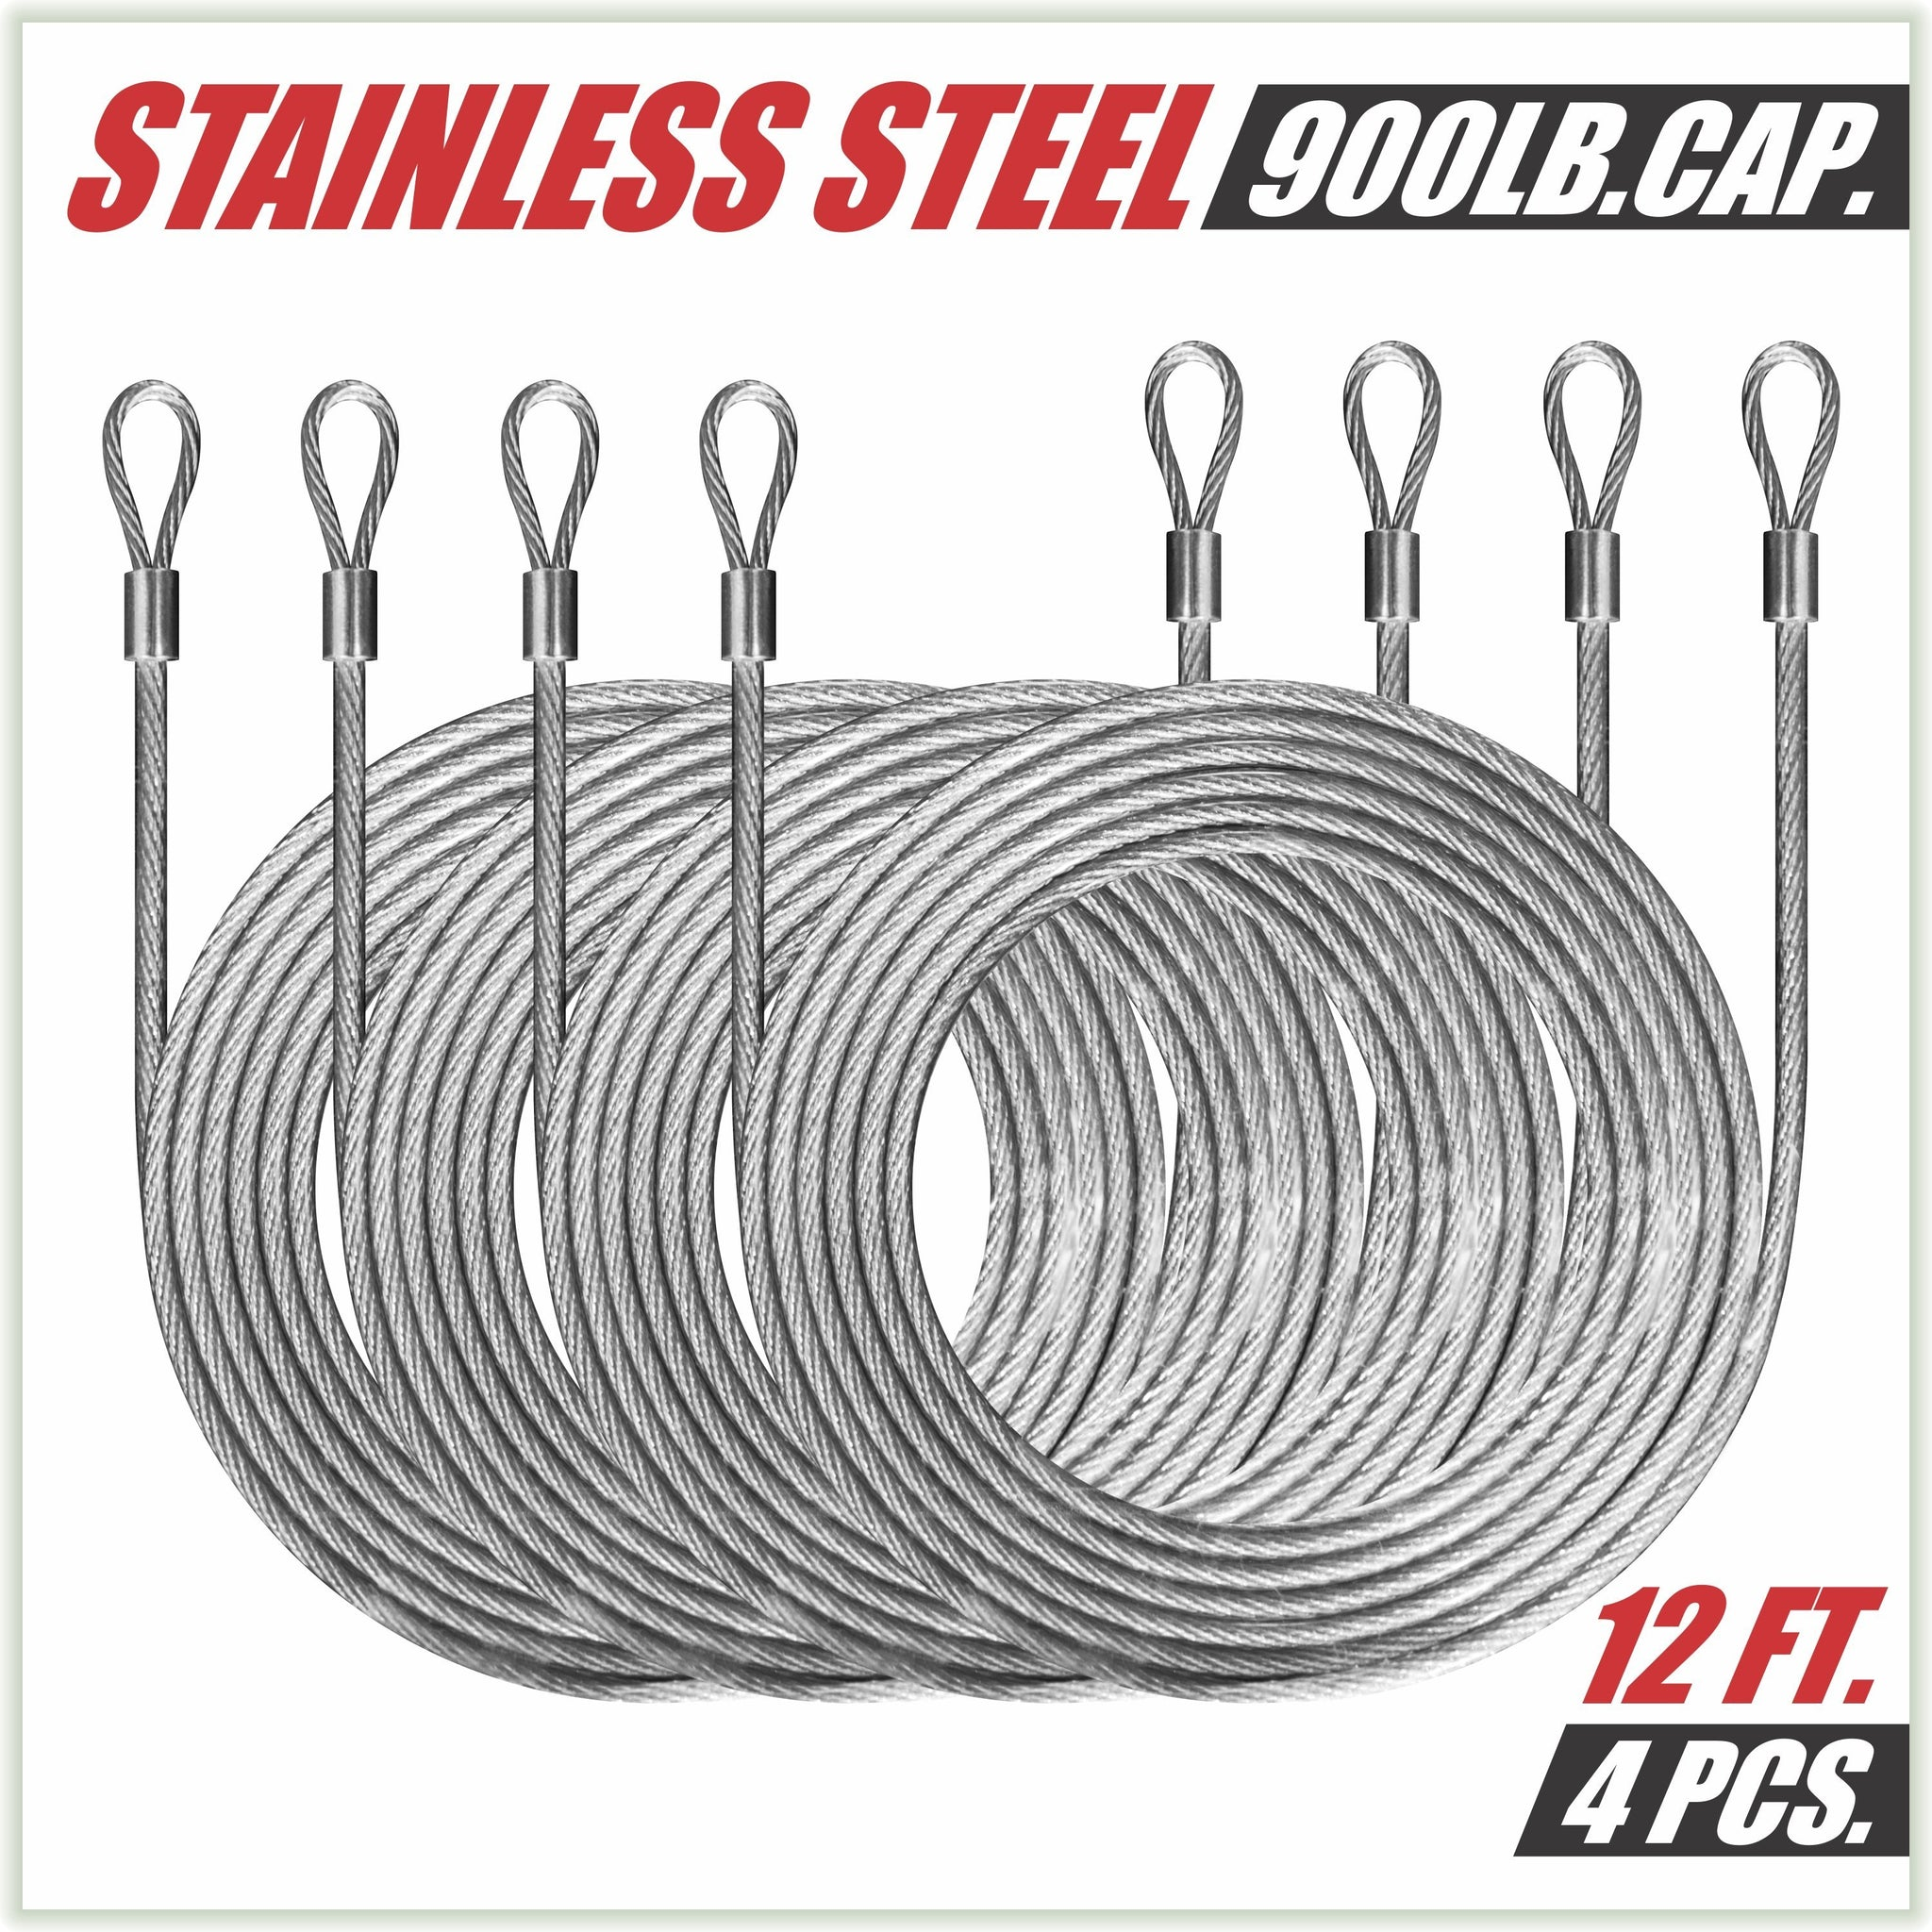 48 Feet (12ft x 4) PVC Coated Stainless Steel Metal Wire Cable Ropes Hardware Kits For Square and Reactangle Sun Shade Sail Canopy  - Commercial Standard Heavy Duty - Colourtree inc